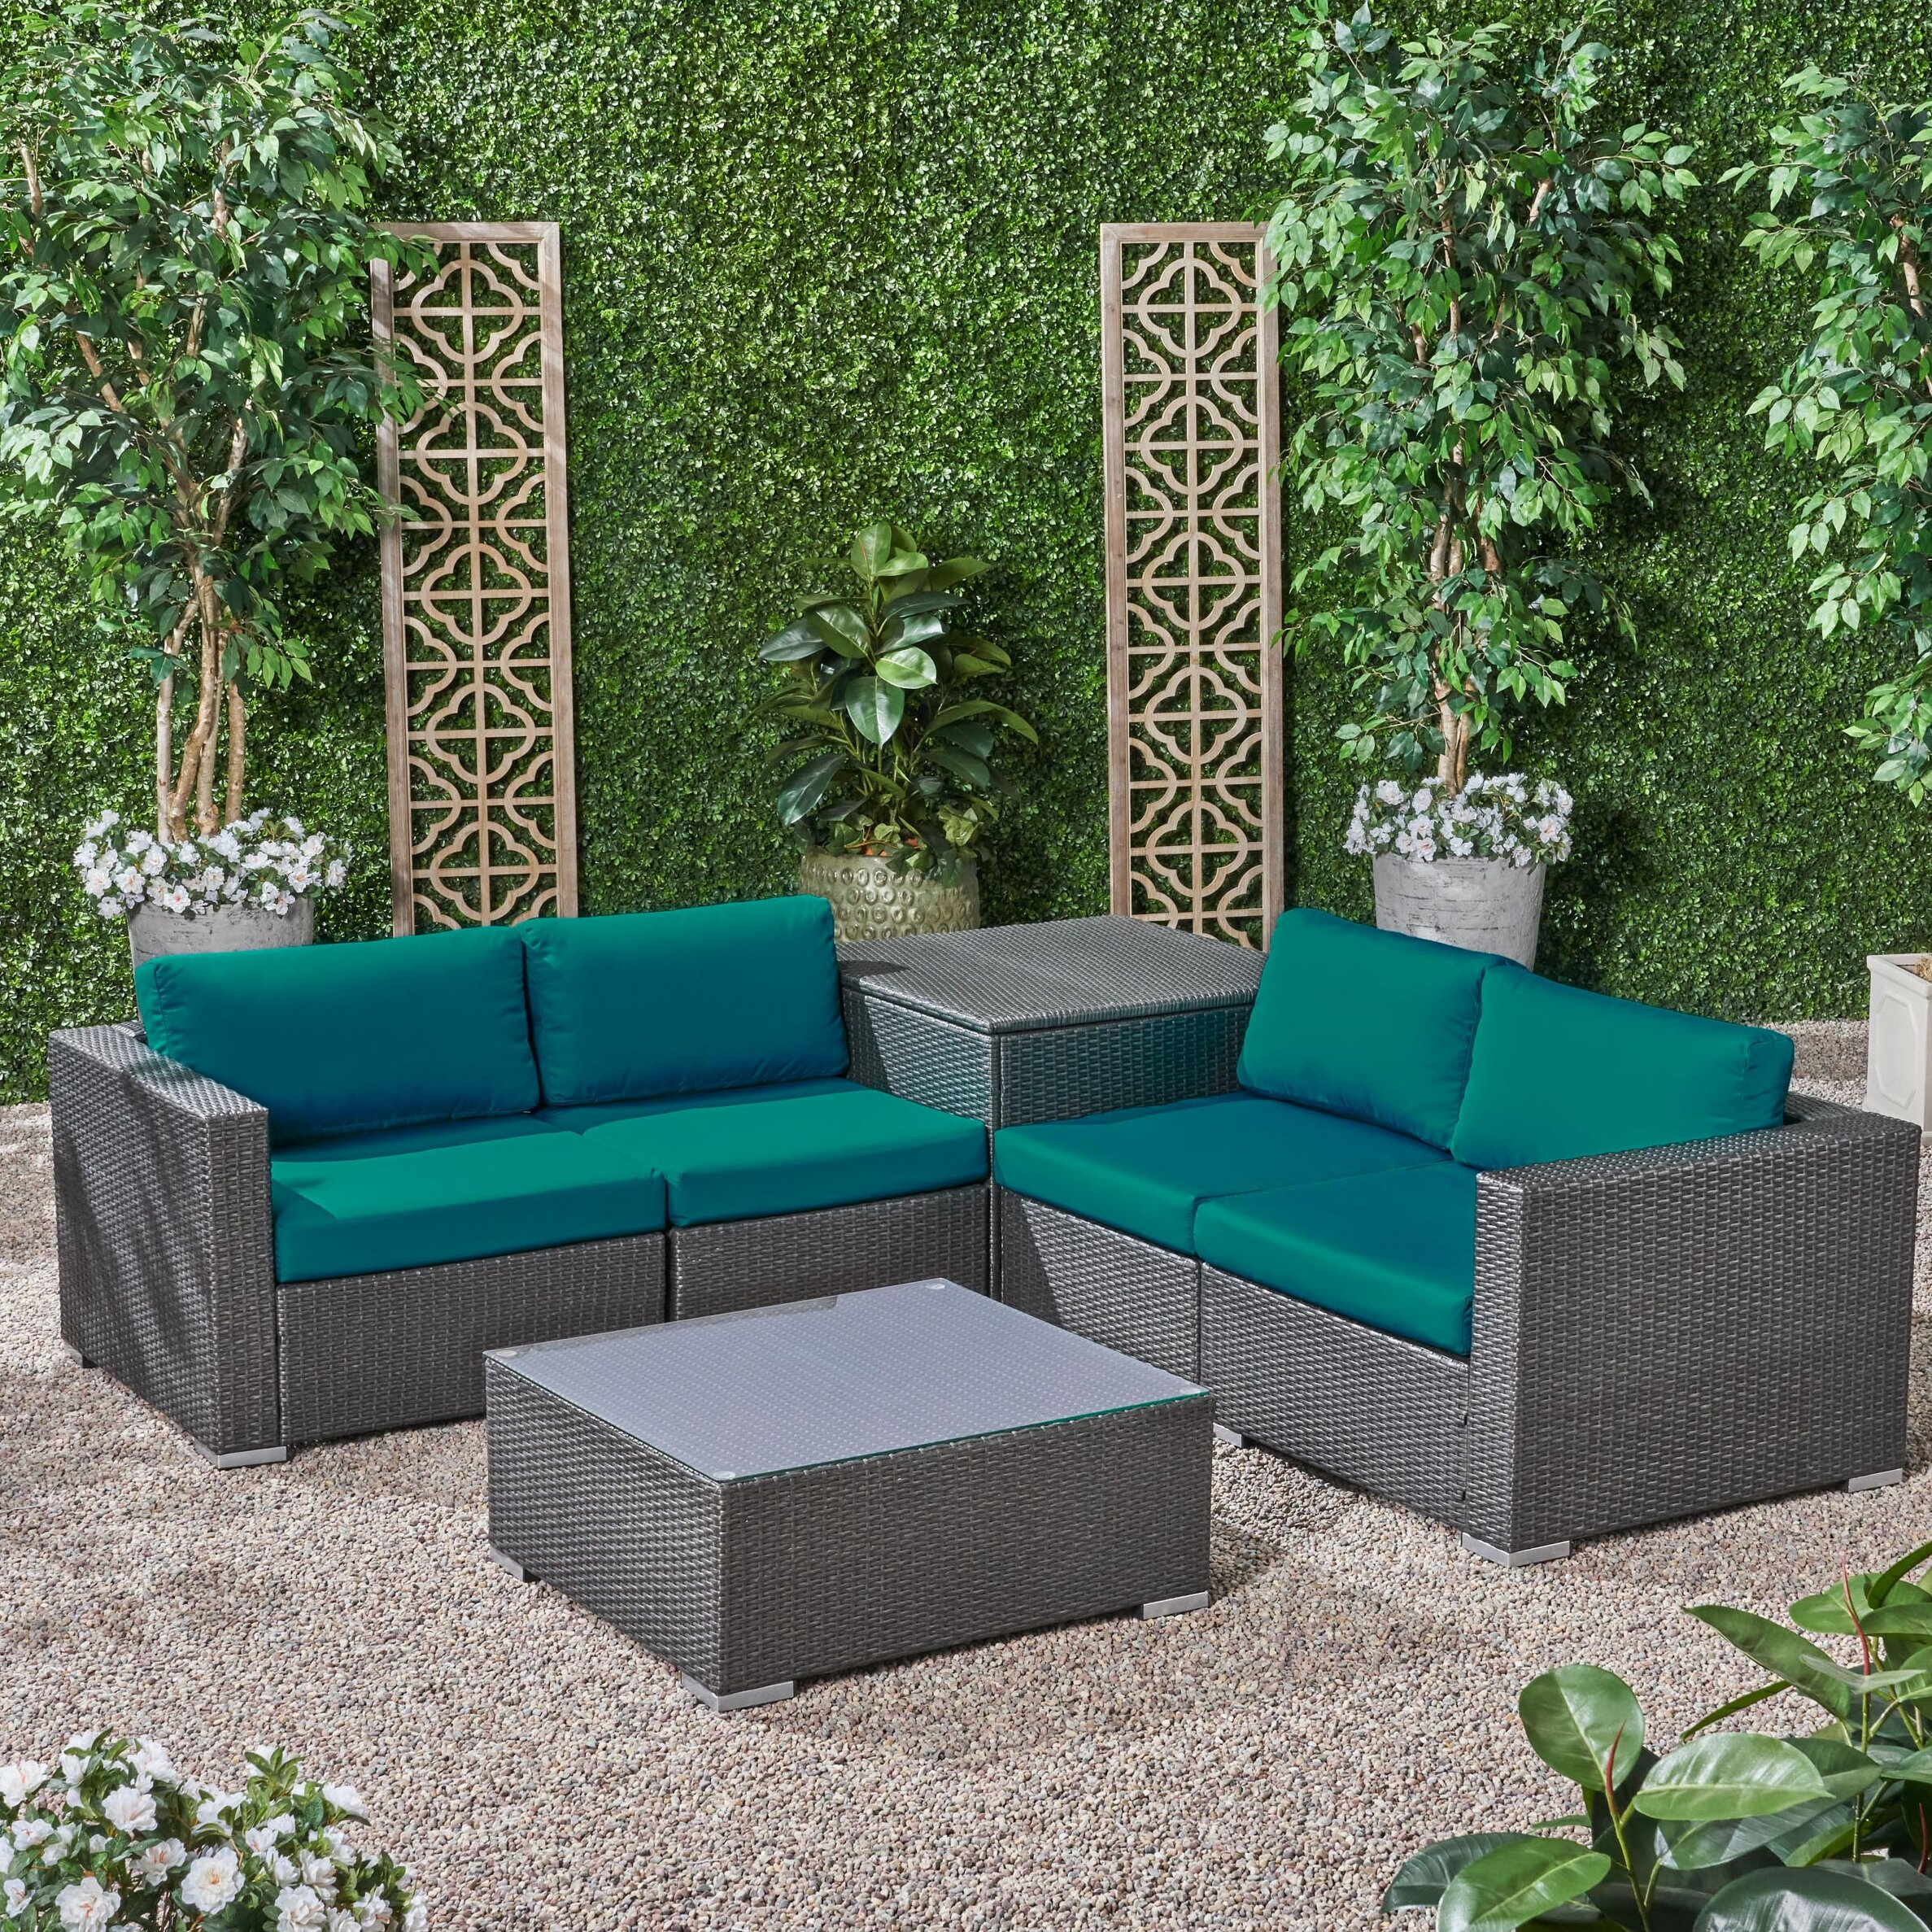 Pleasing Roxann Outdoor 4 Seater Wicker Sofa Set With Storage Ottoman And Sunbrella Cushions Ocoug Best Dining Table And Chair Ideas Images Ocougorg